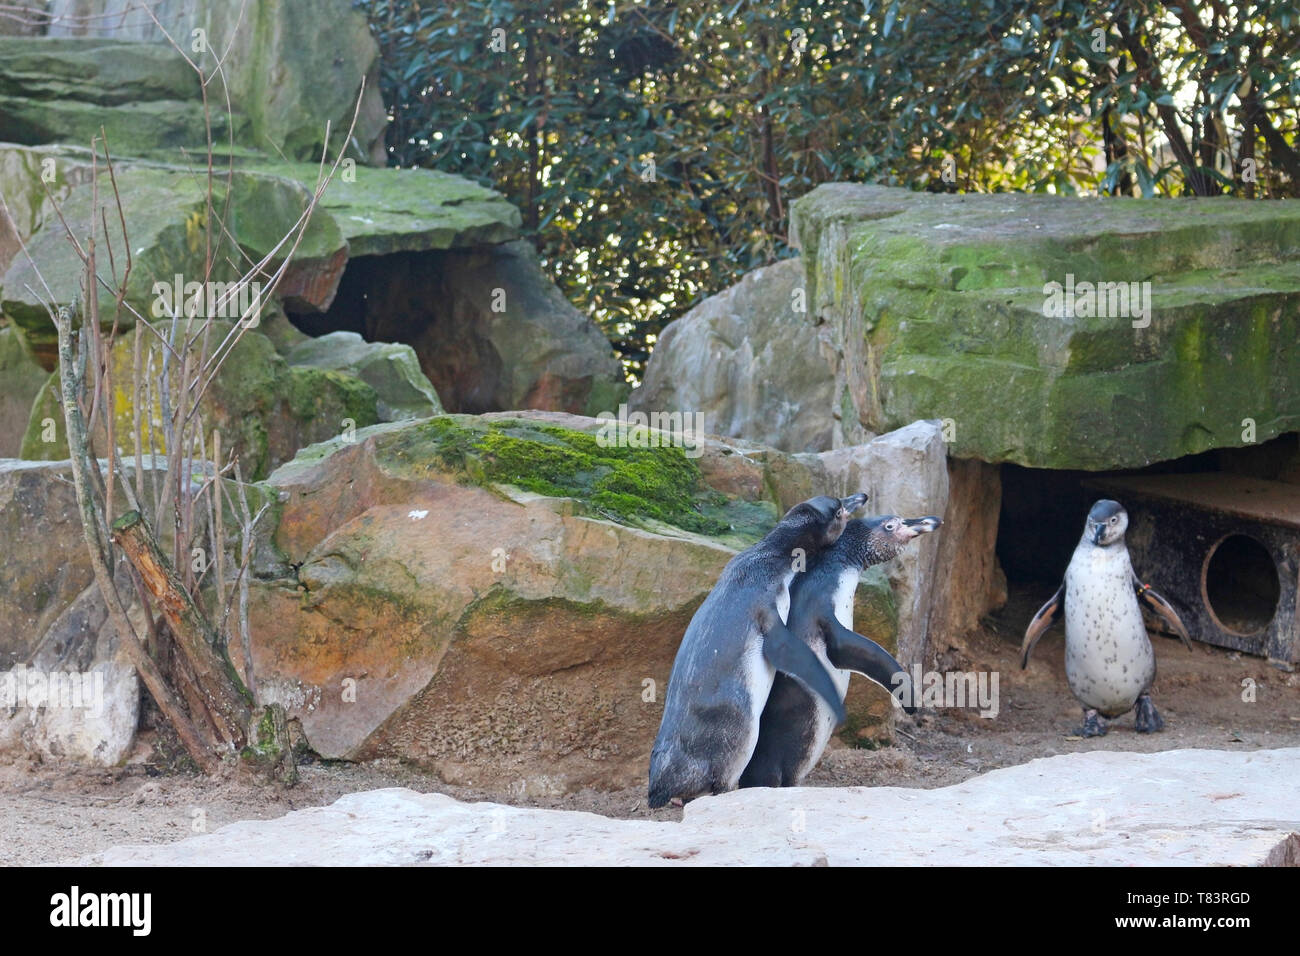 Penguins are seabirds that do not fly, and with the arrival of spring comes the mating ritual, and penguins are faithful animals. - Stock Image